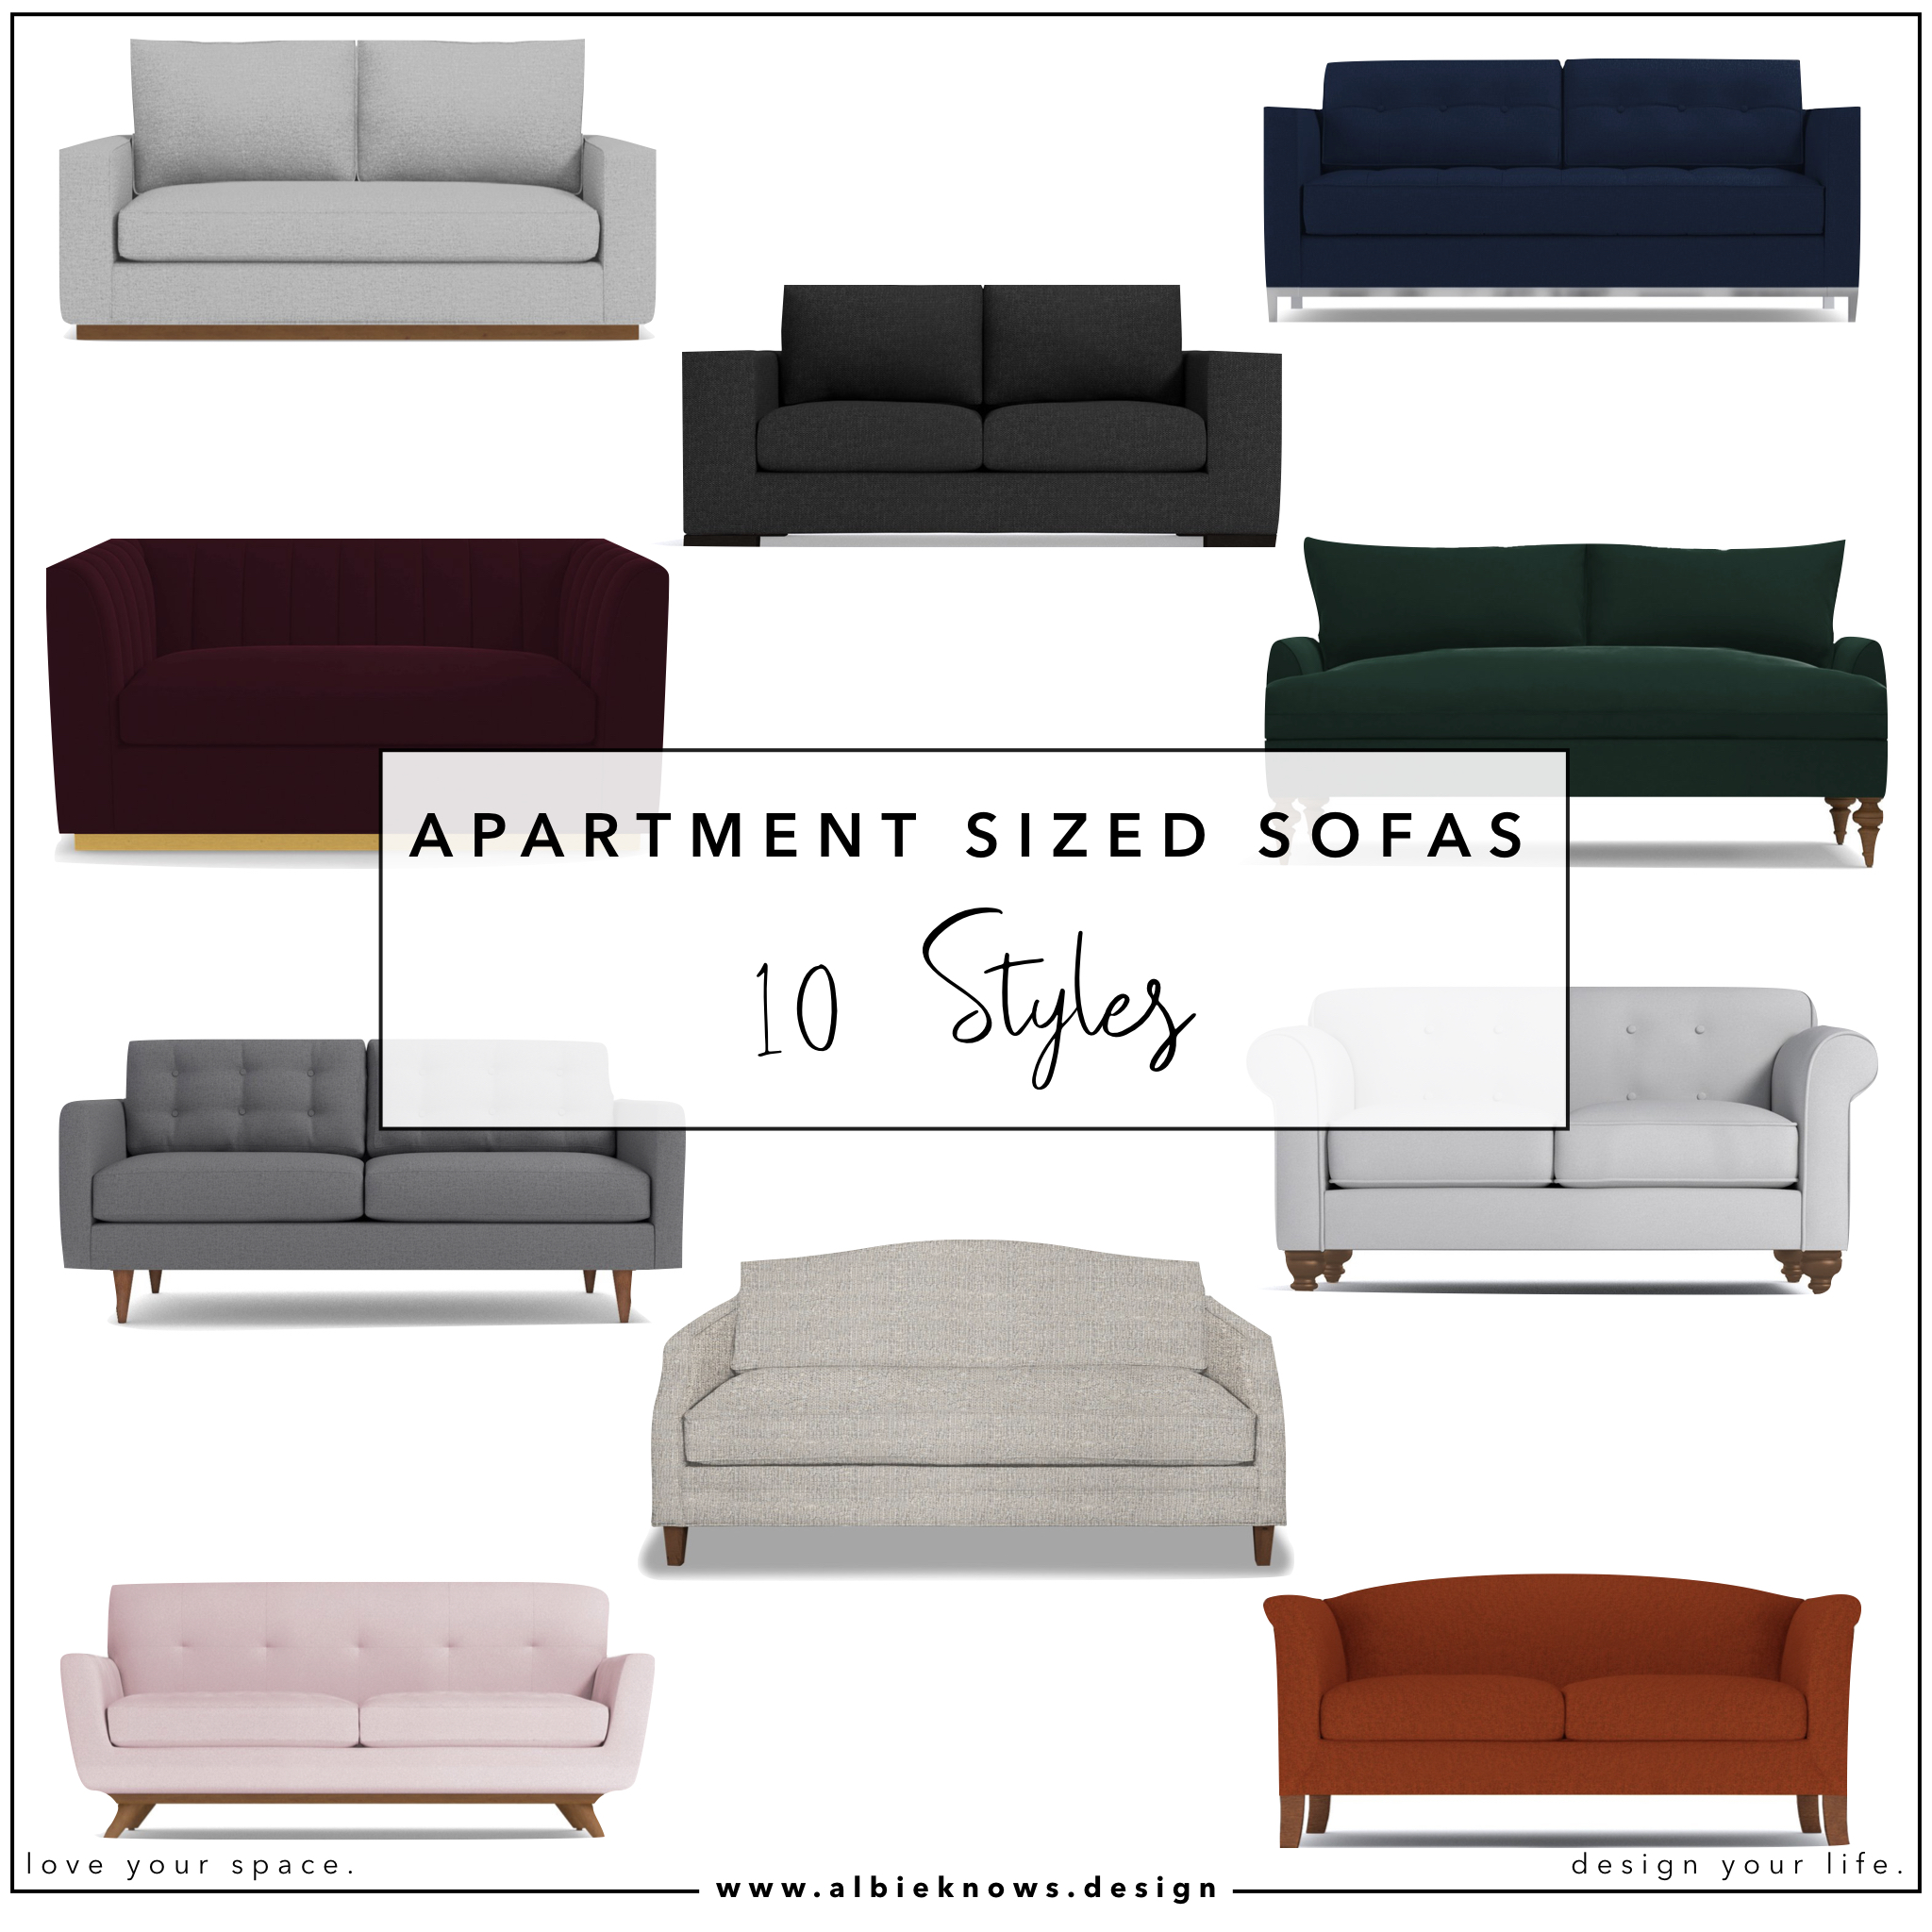 Apartment Sized Sofas in Every Style by Albie Knows Interior ...